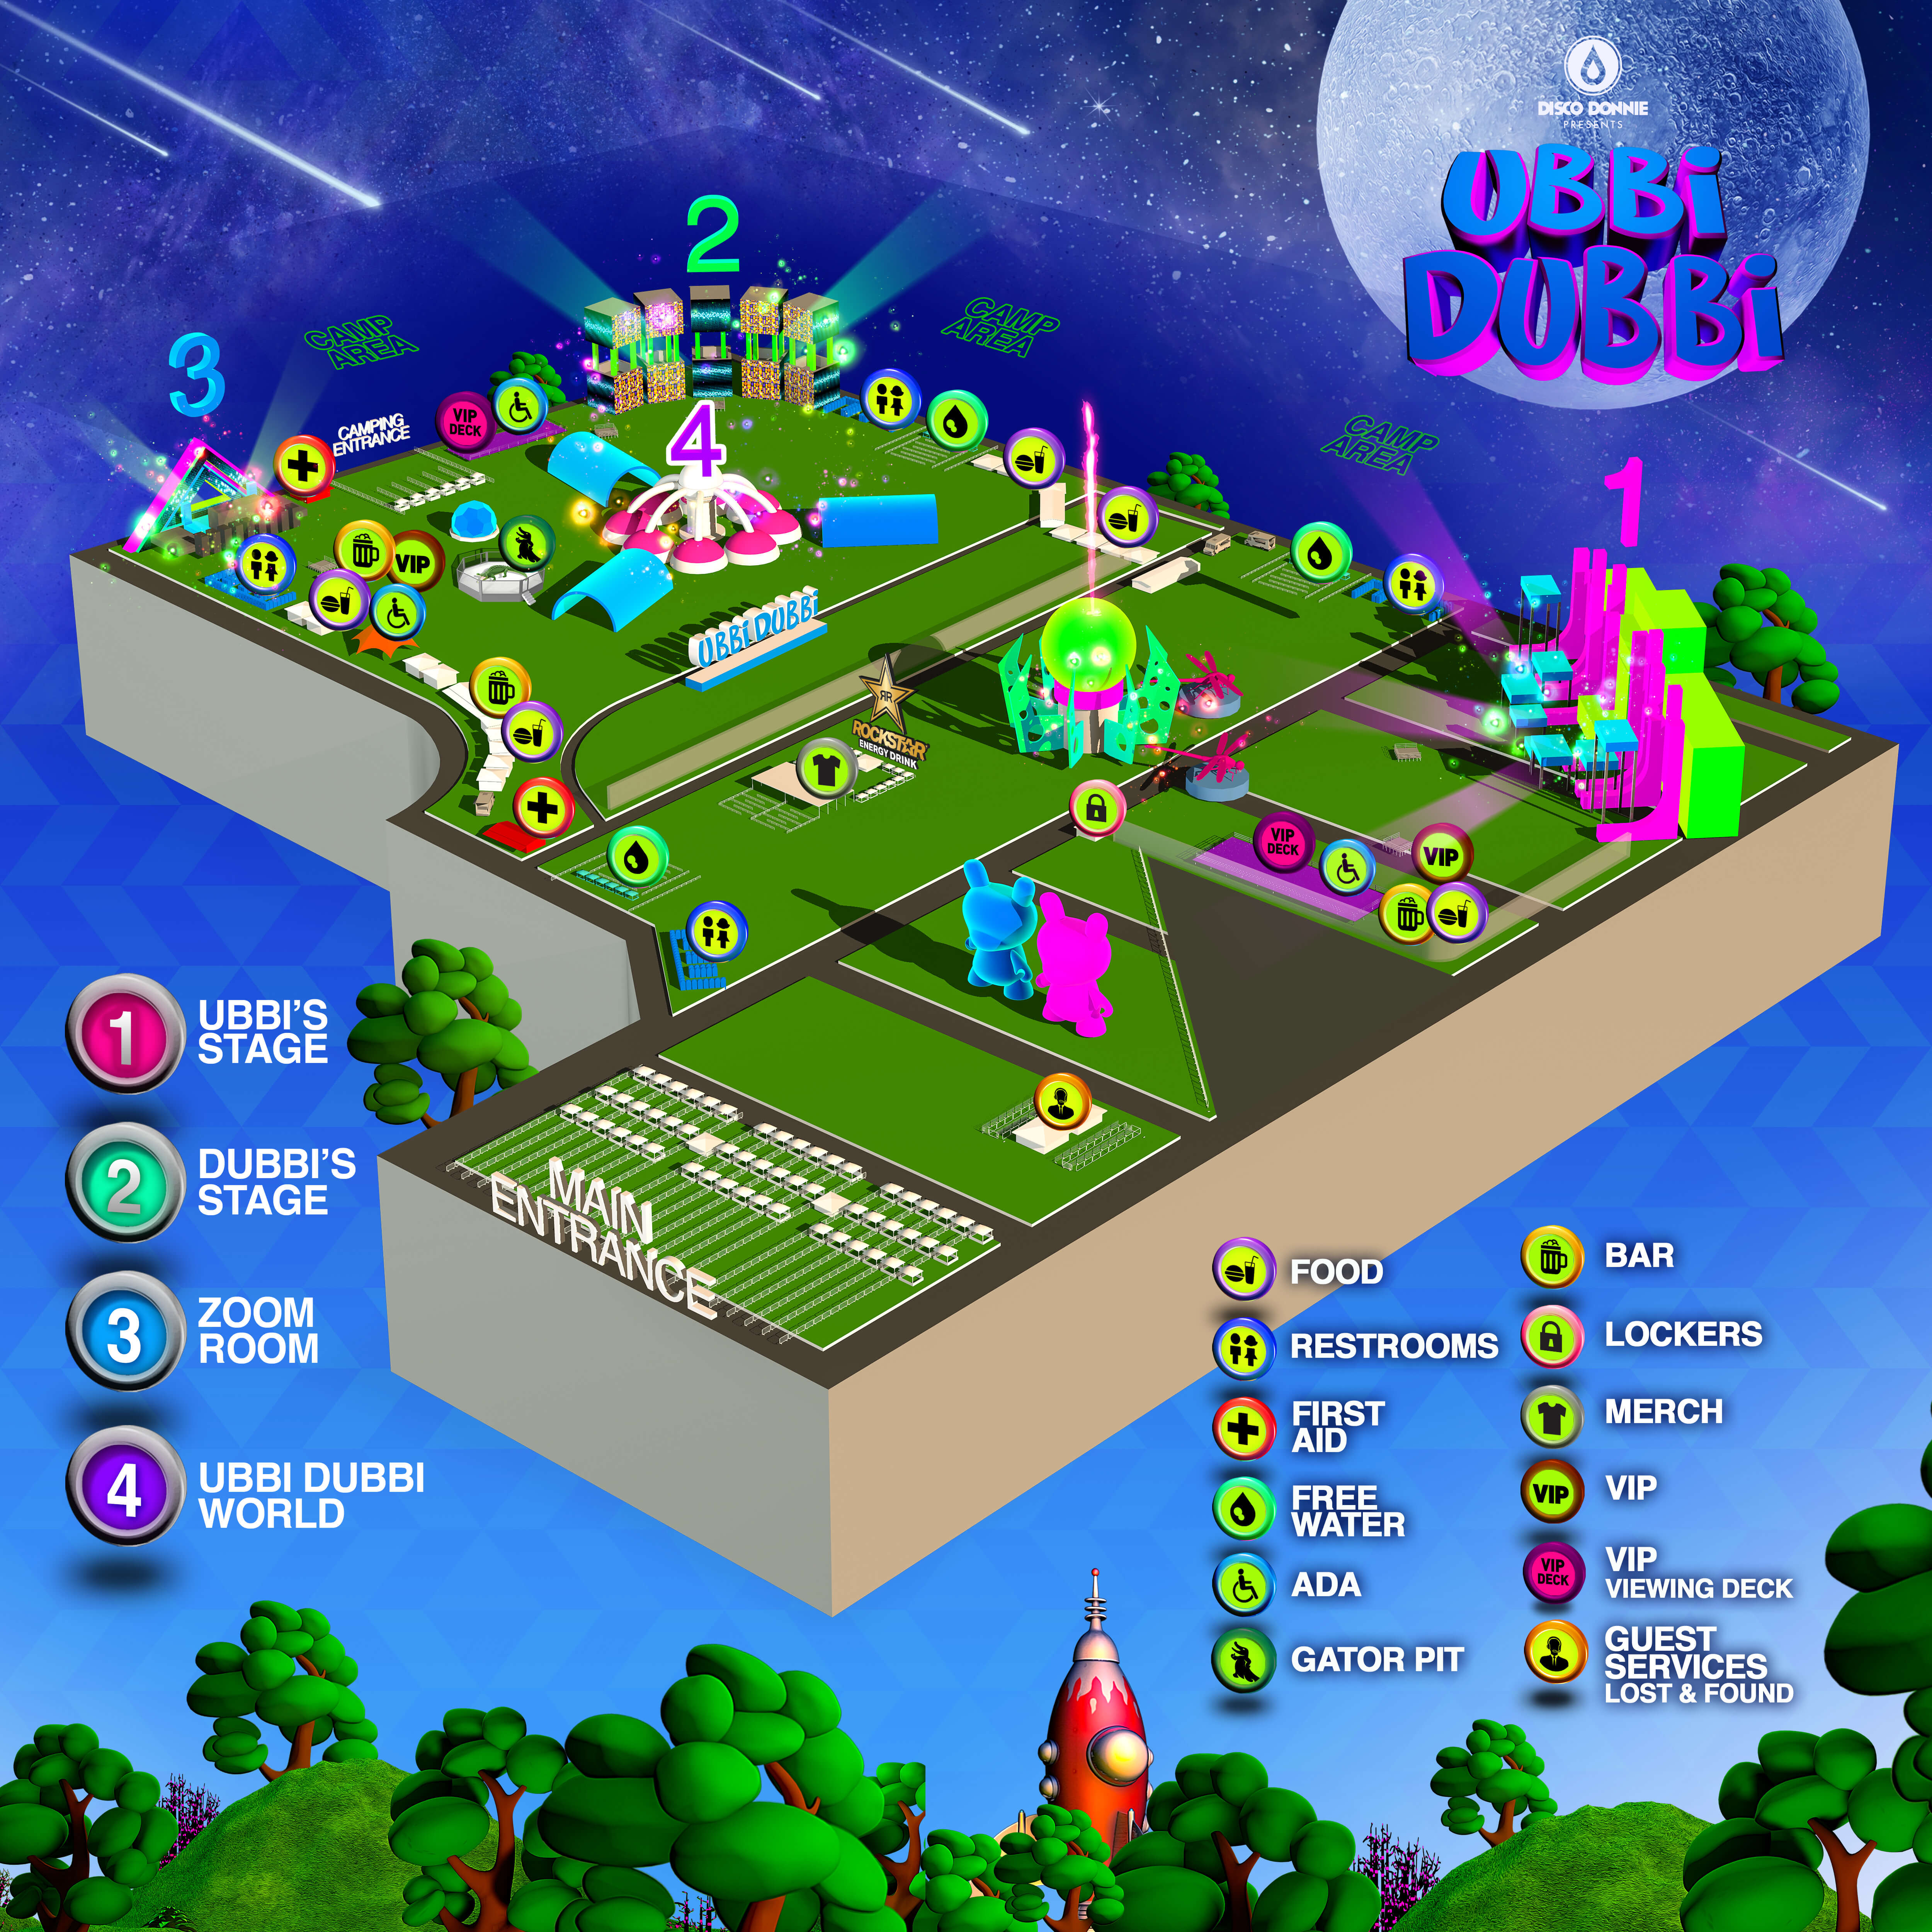 Festival Map of Ubbi Dubbi Festival 2021